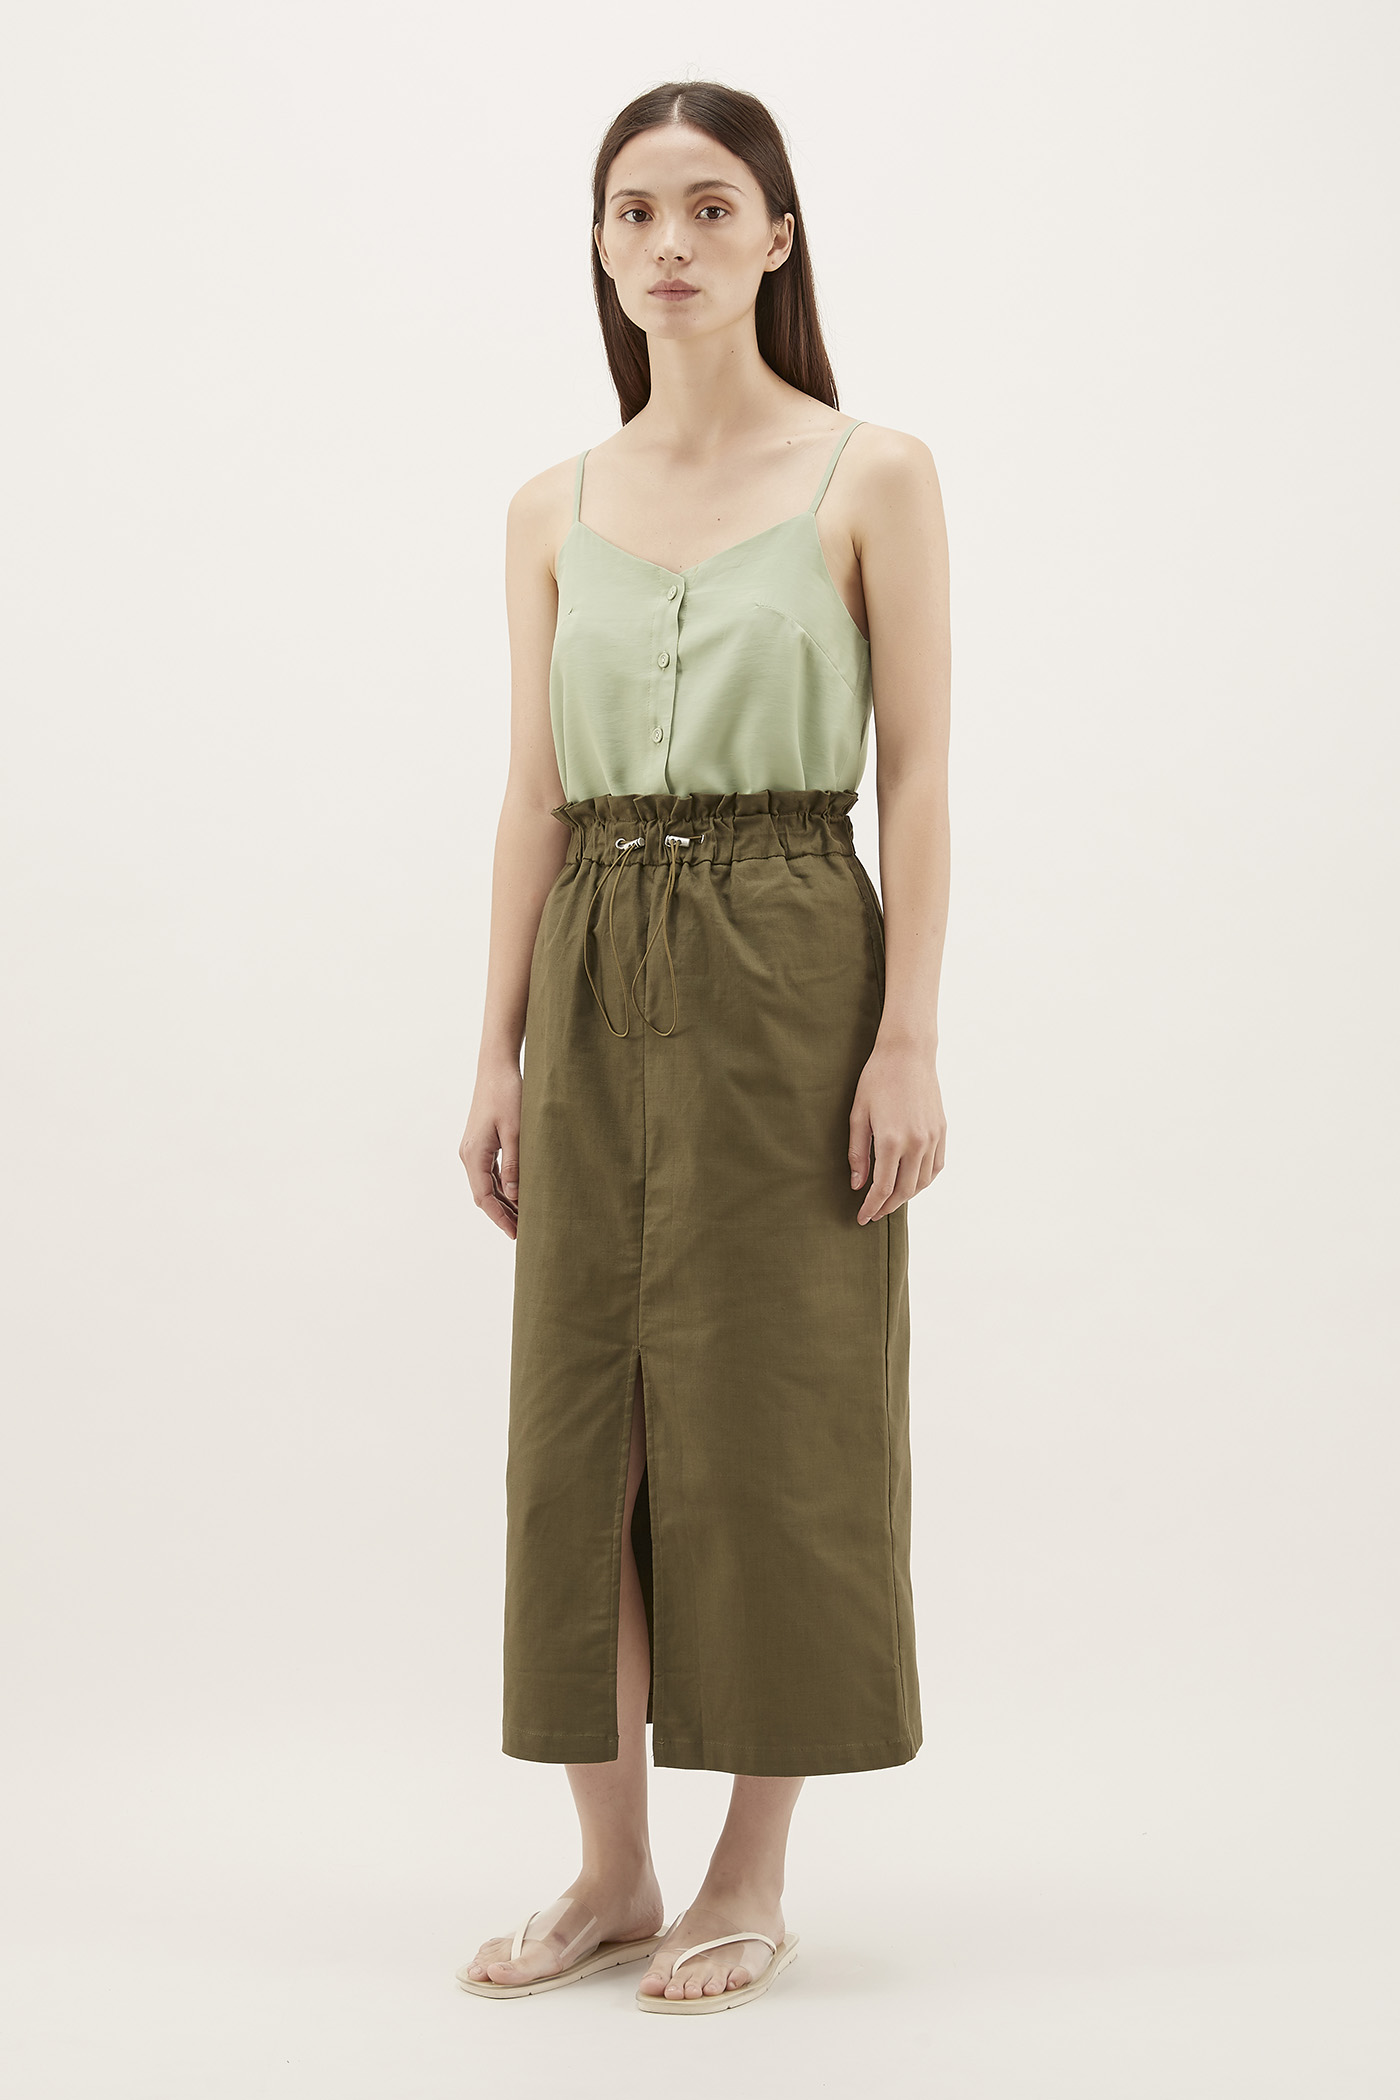 Lakya Button-Through Camisole